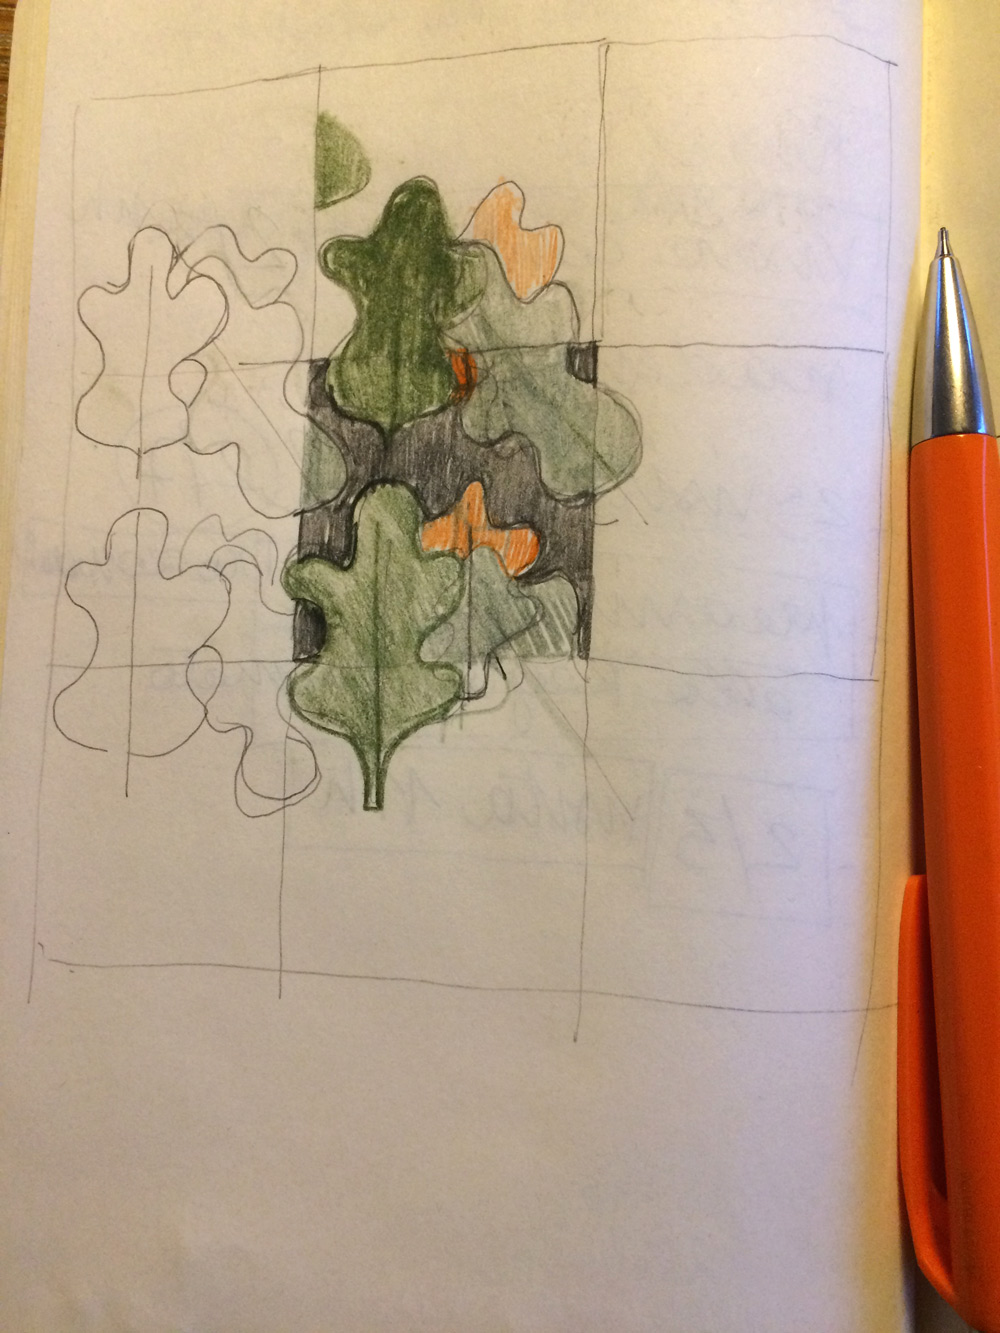 leaves-tiles-sketch